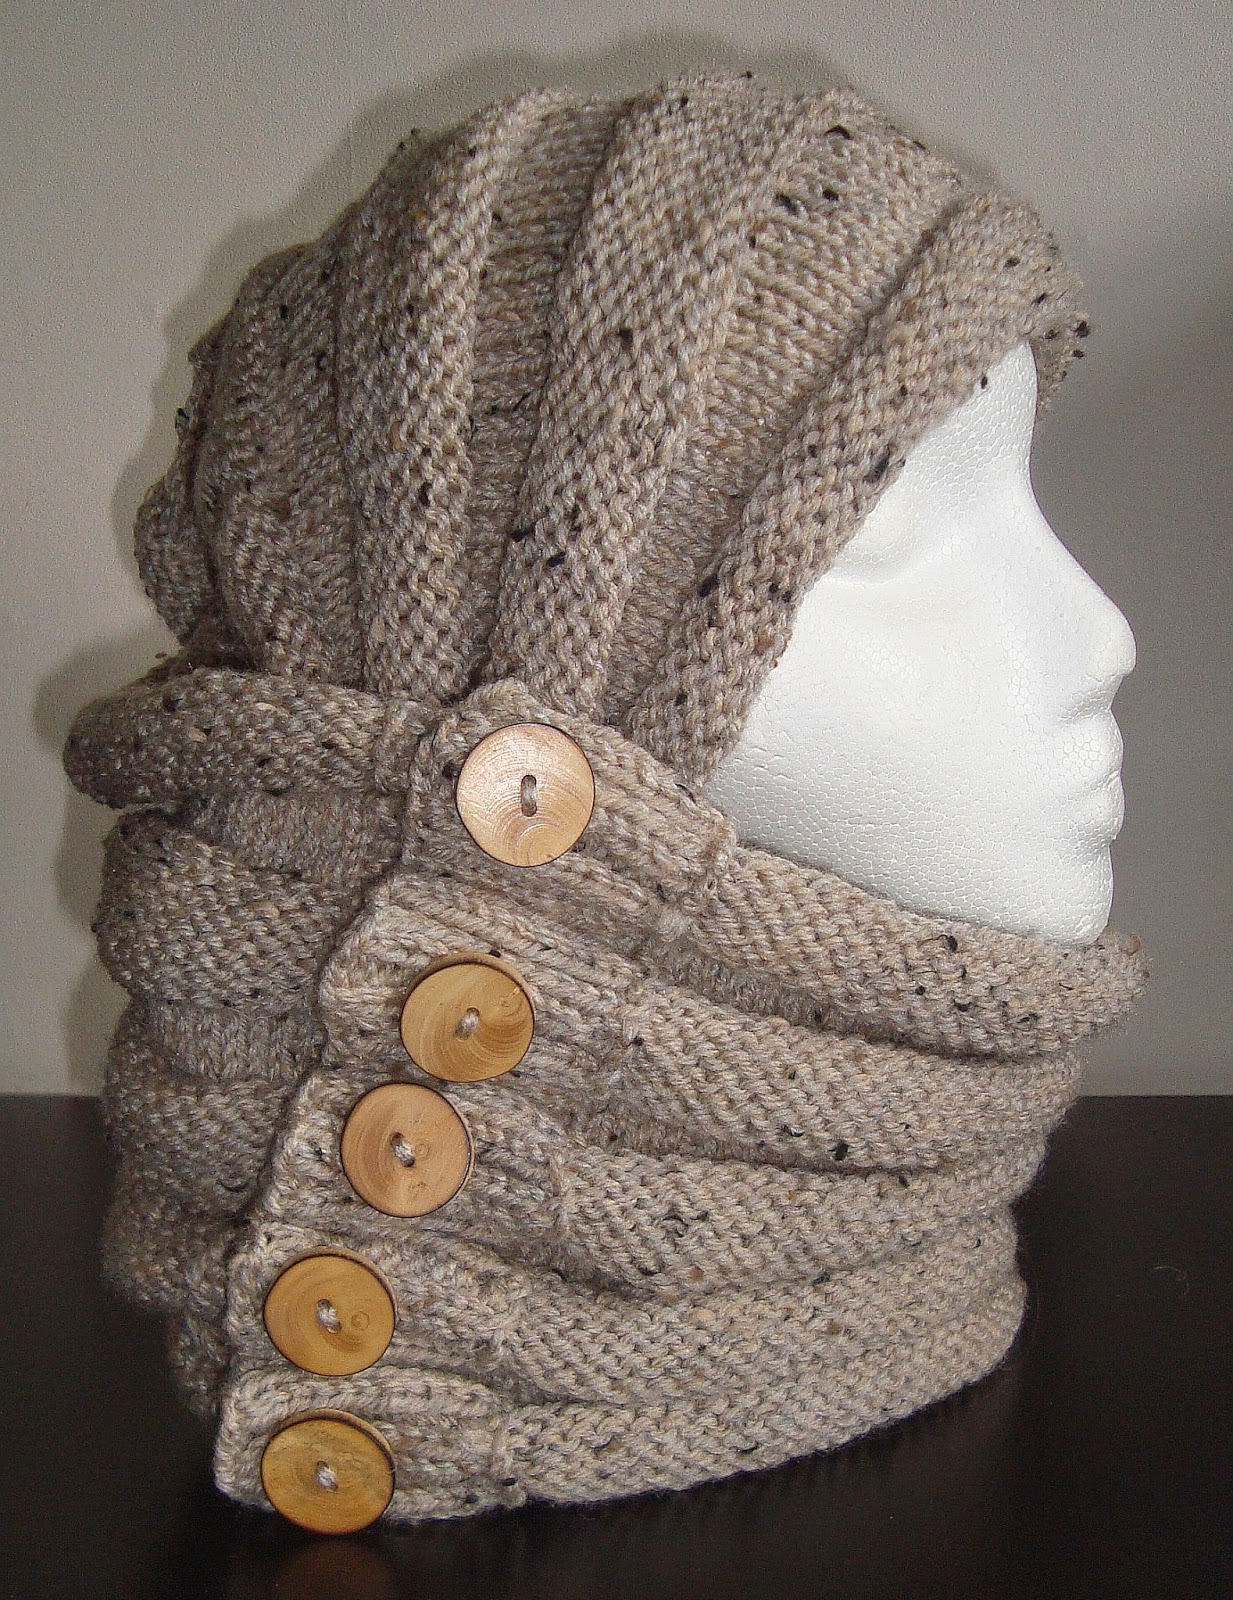 The Design Studio: HAND KNITTING PATTERNS. ARAN. COWLS, HATS, SCARVES AND NEC...